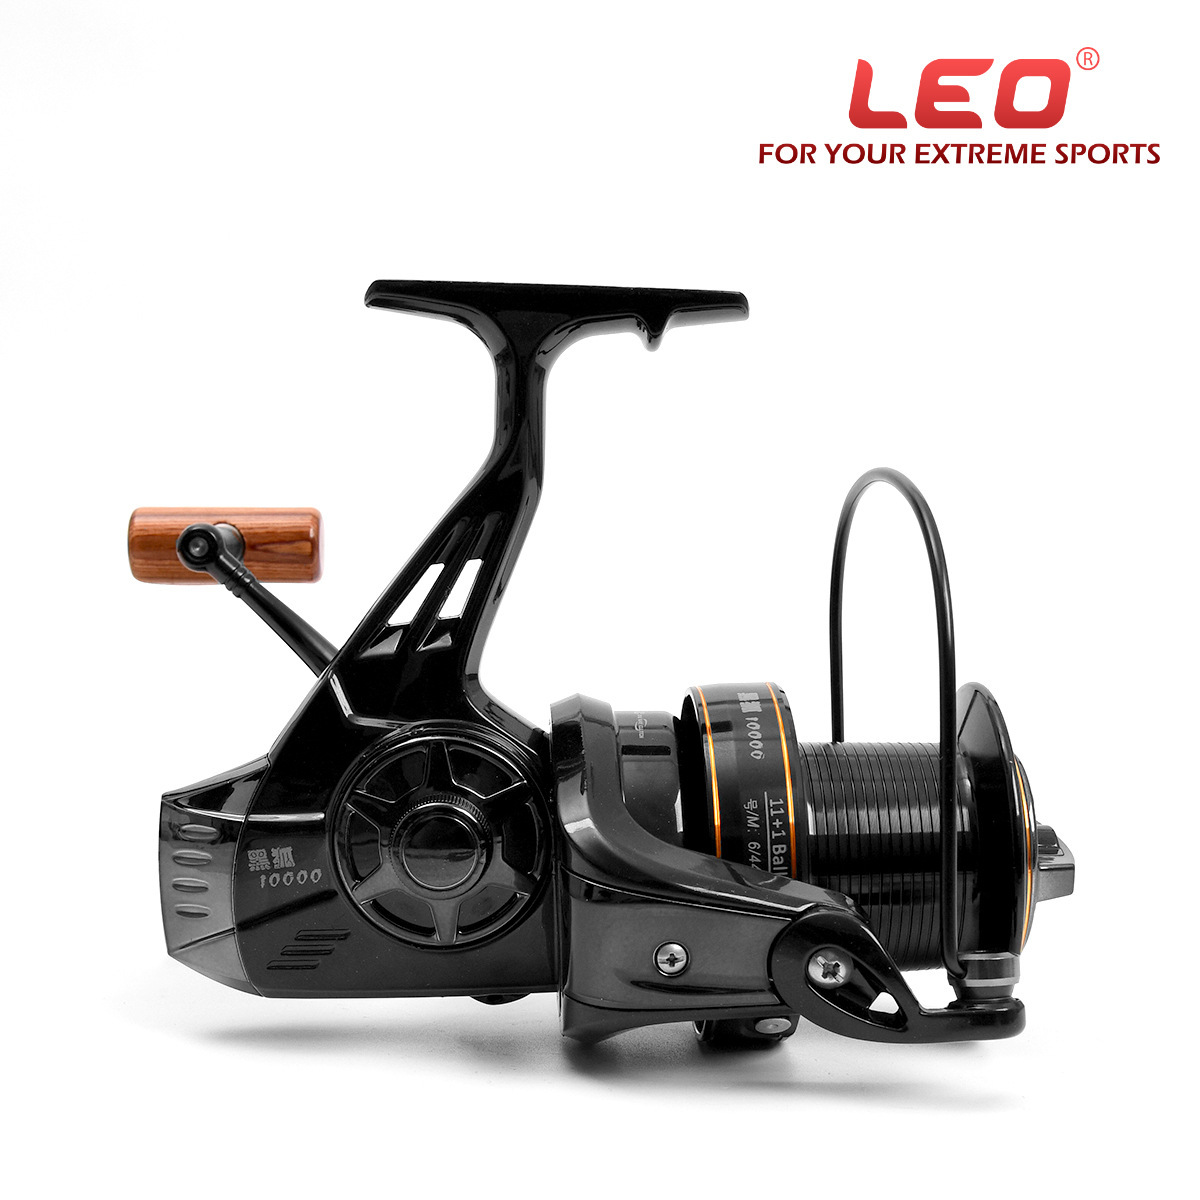 LEO Fishing Reel Spinning Wheel Gear Ratio 4.1:1 Ball Bearing 11+1BB Deep Sea Stainless Steel Fishing Tackle 2018 New Pesca russian style spinning fishing reel red wheel max drag 6kg 5 2 1 gear ratio 9 1bb ball bearings fishing tackle free spoon